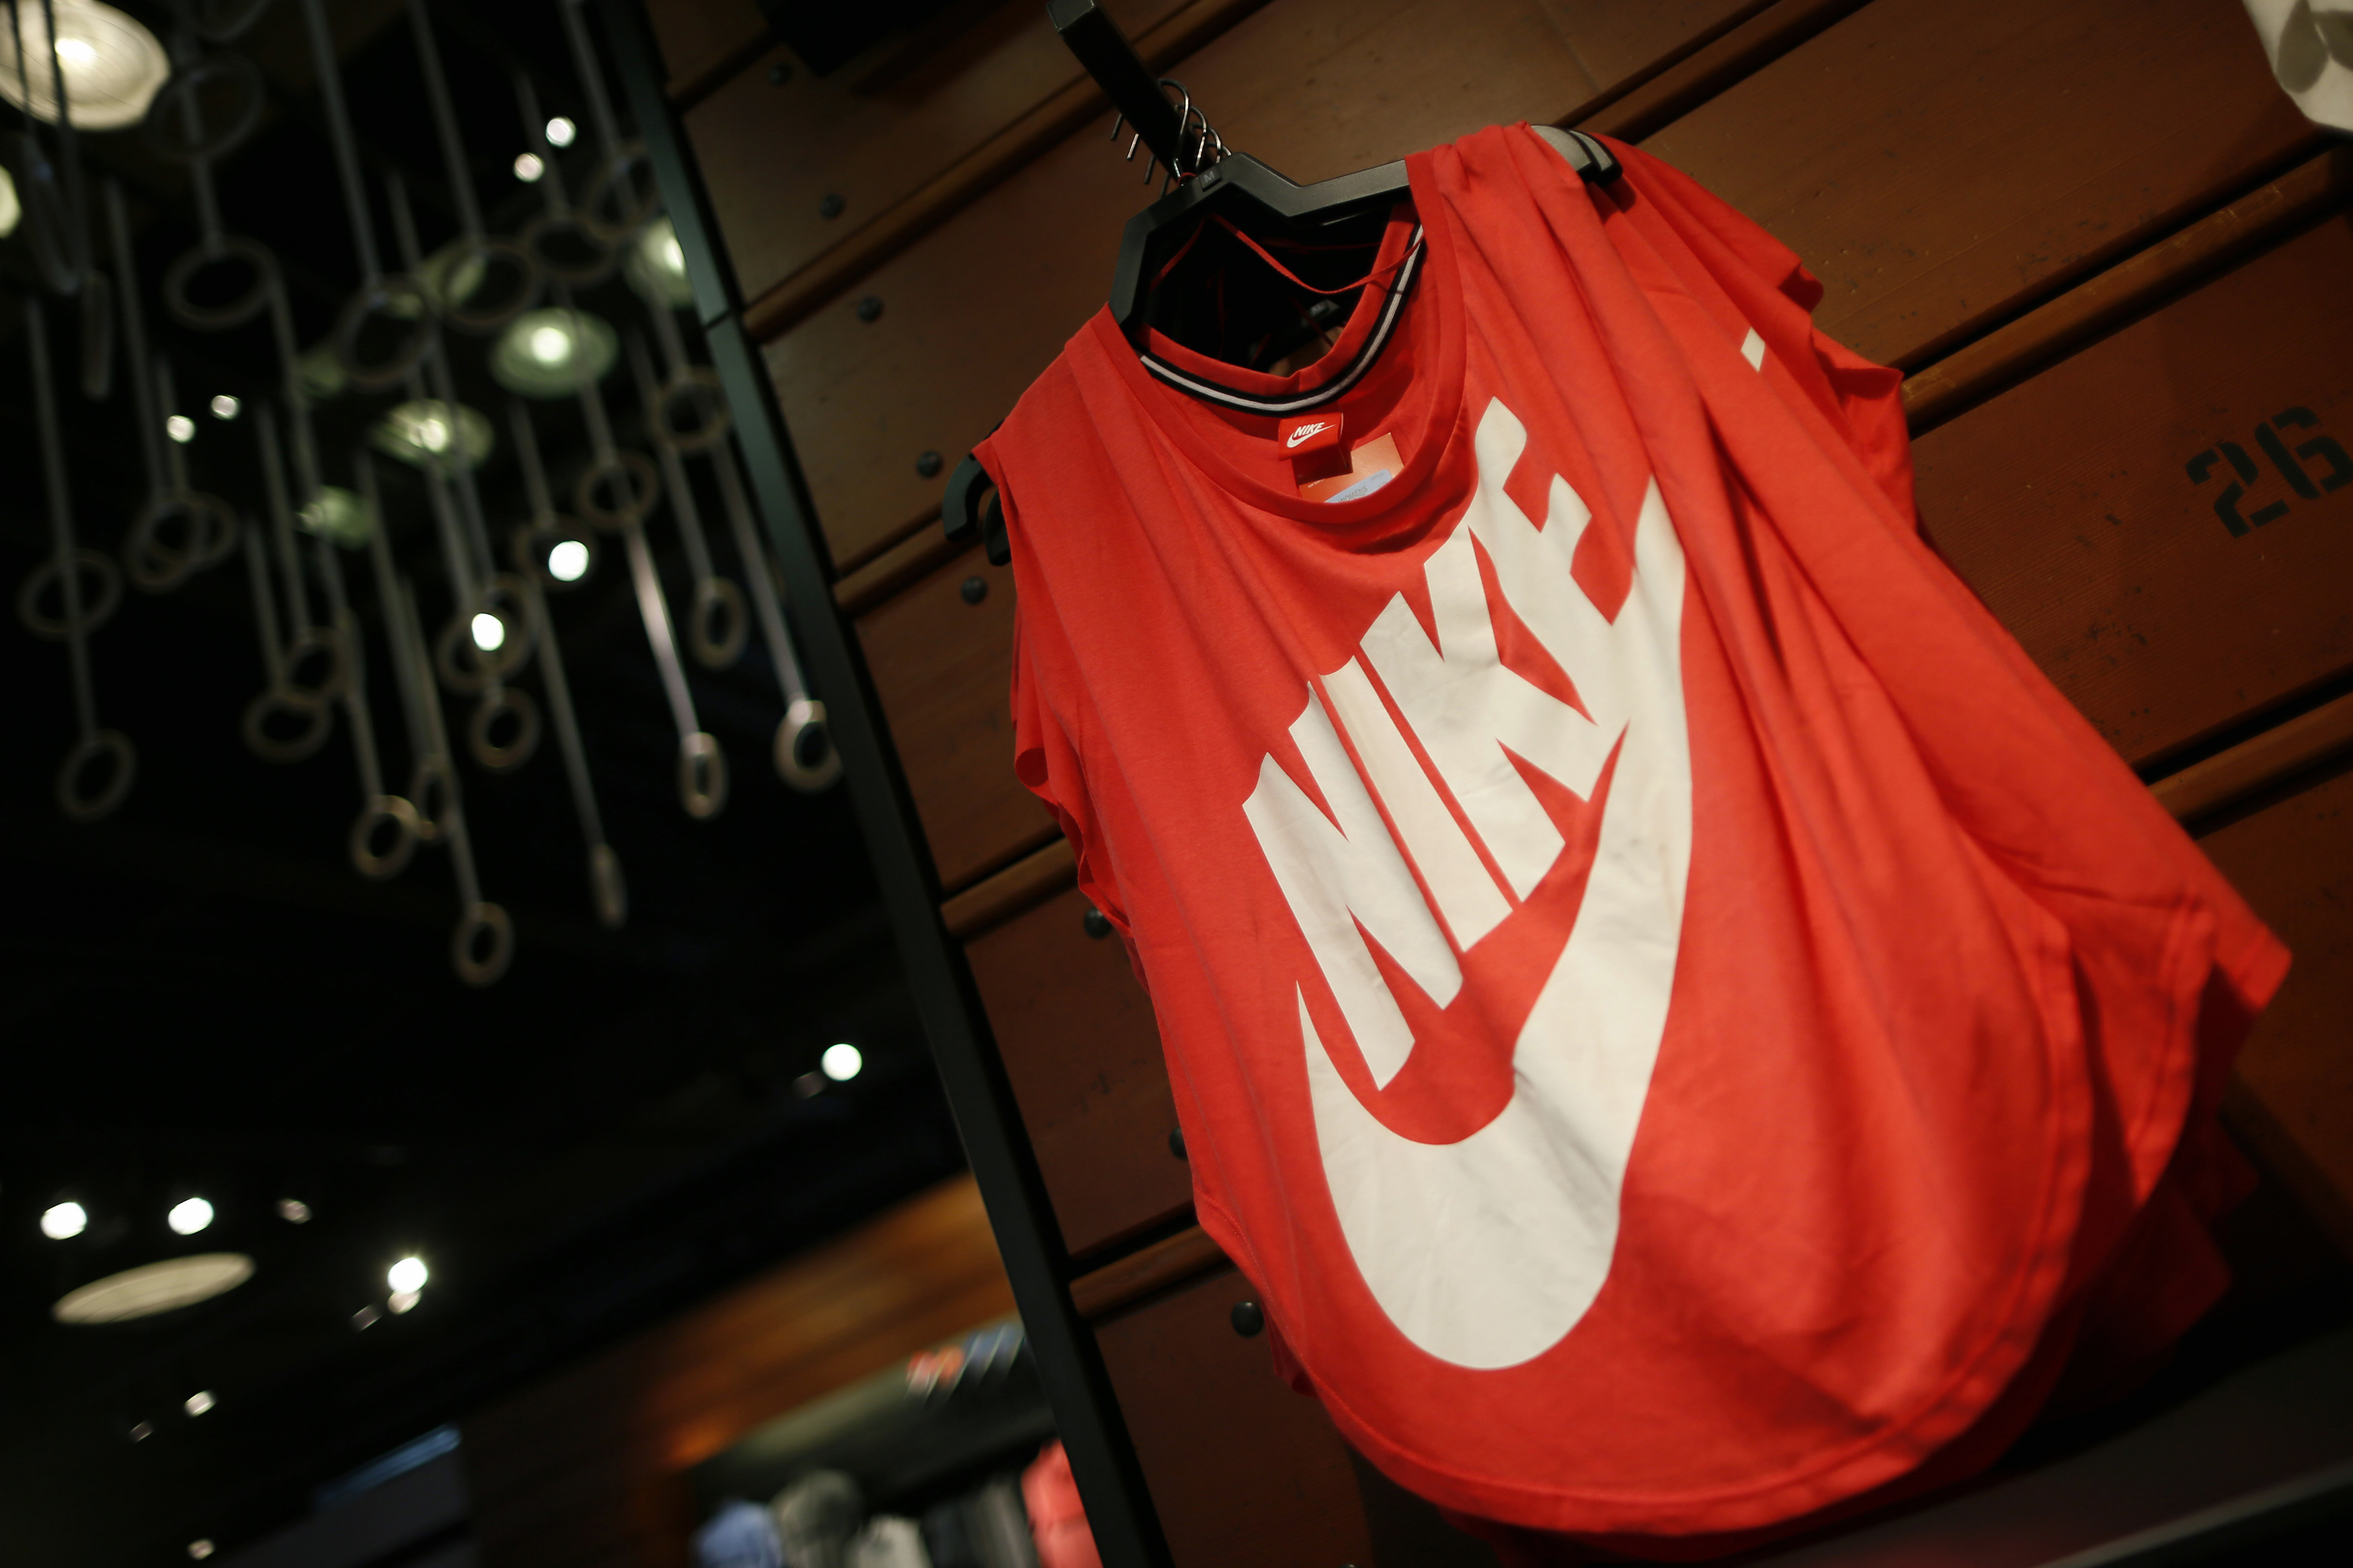 Clothes are displayed in the Nike store in Santa Monica